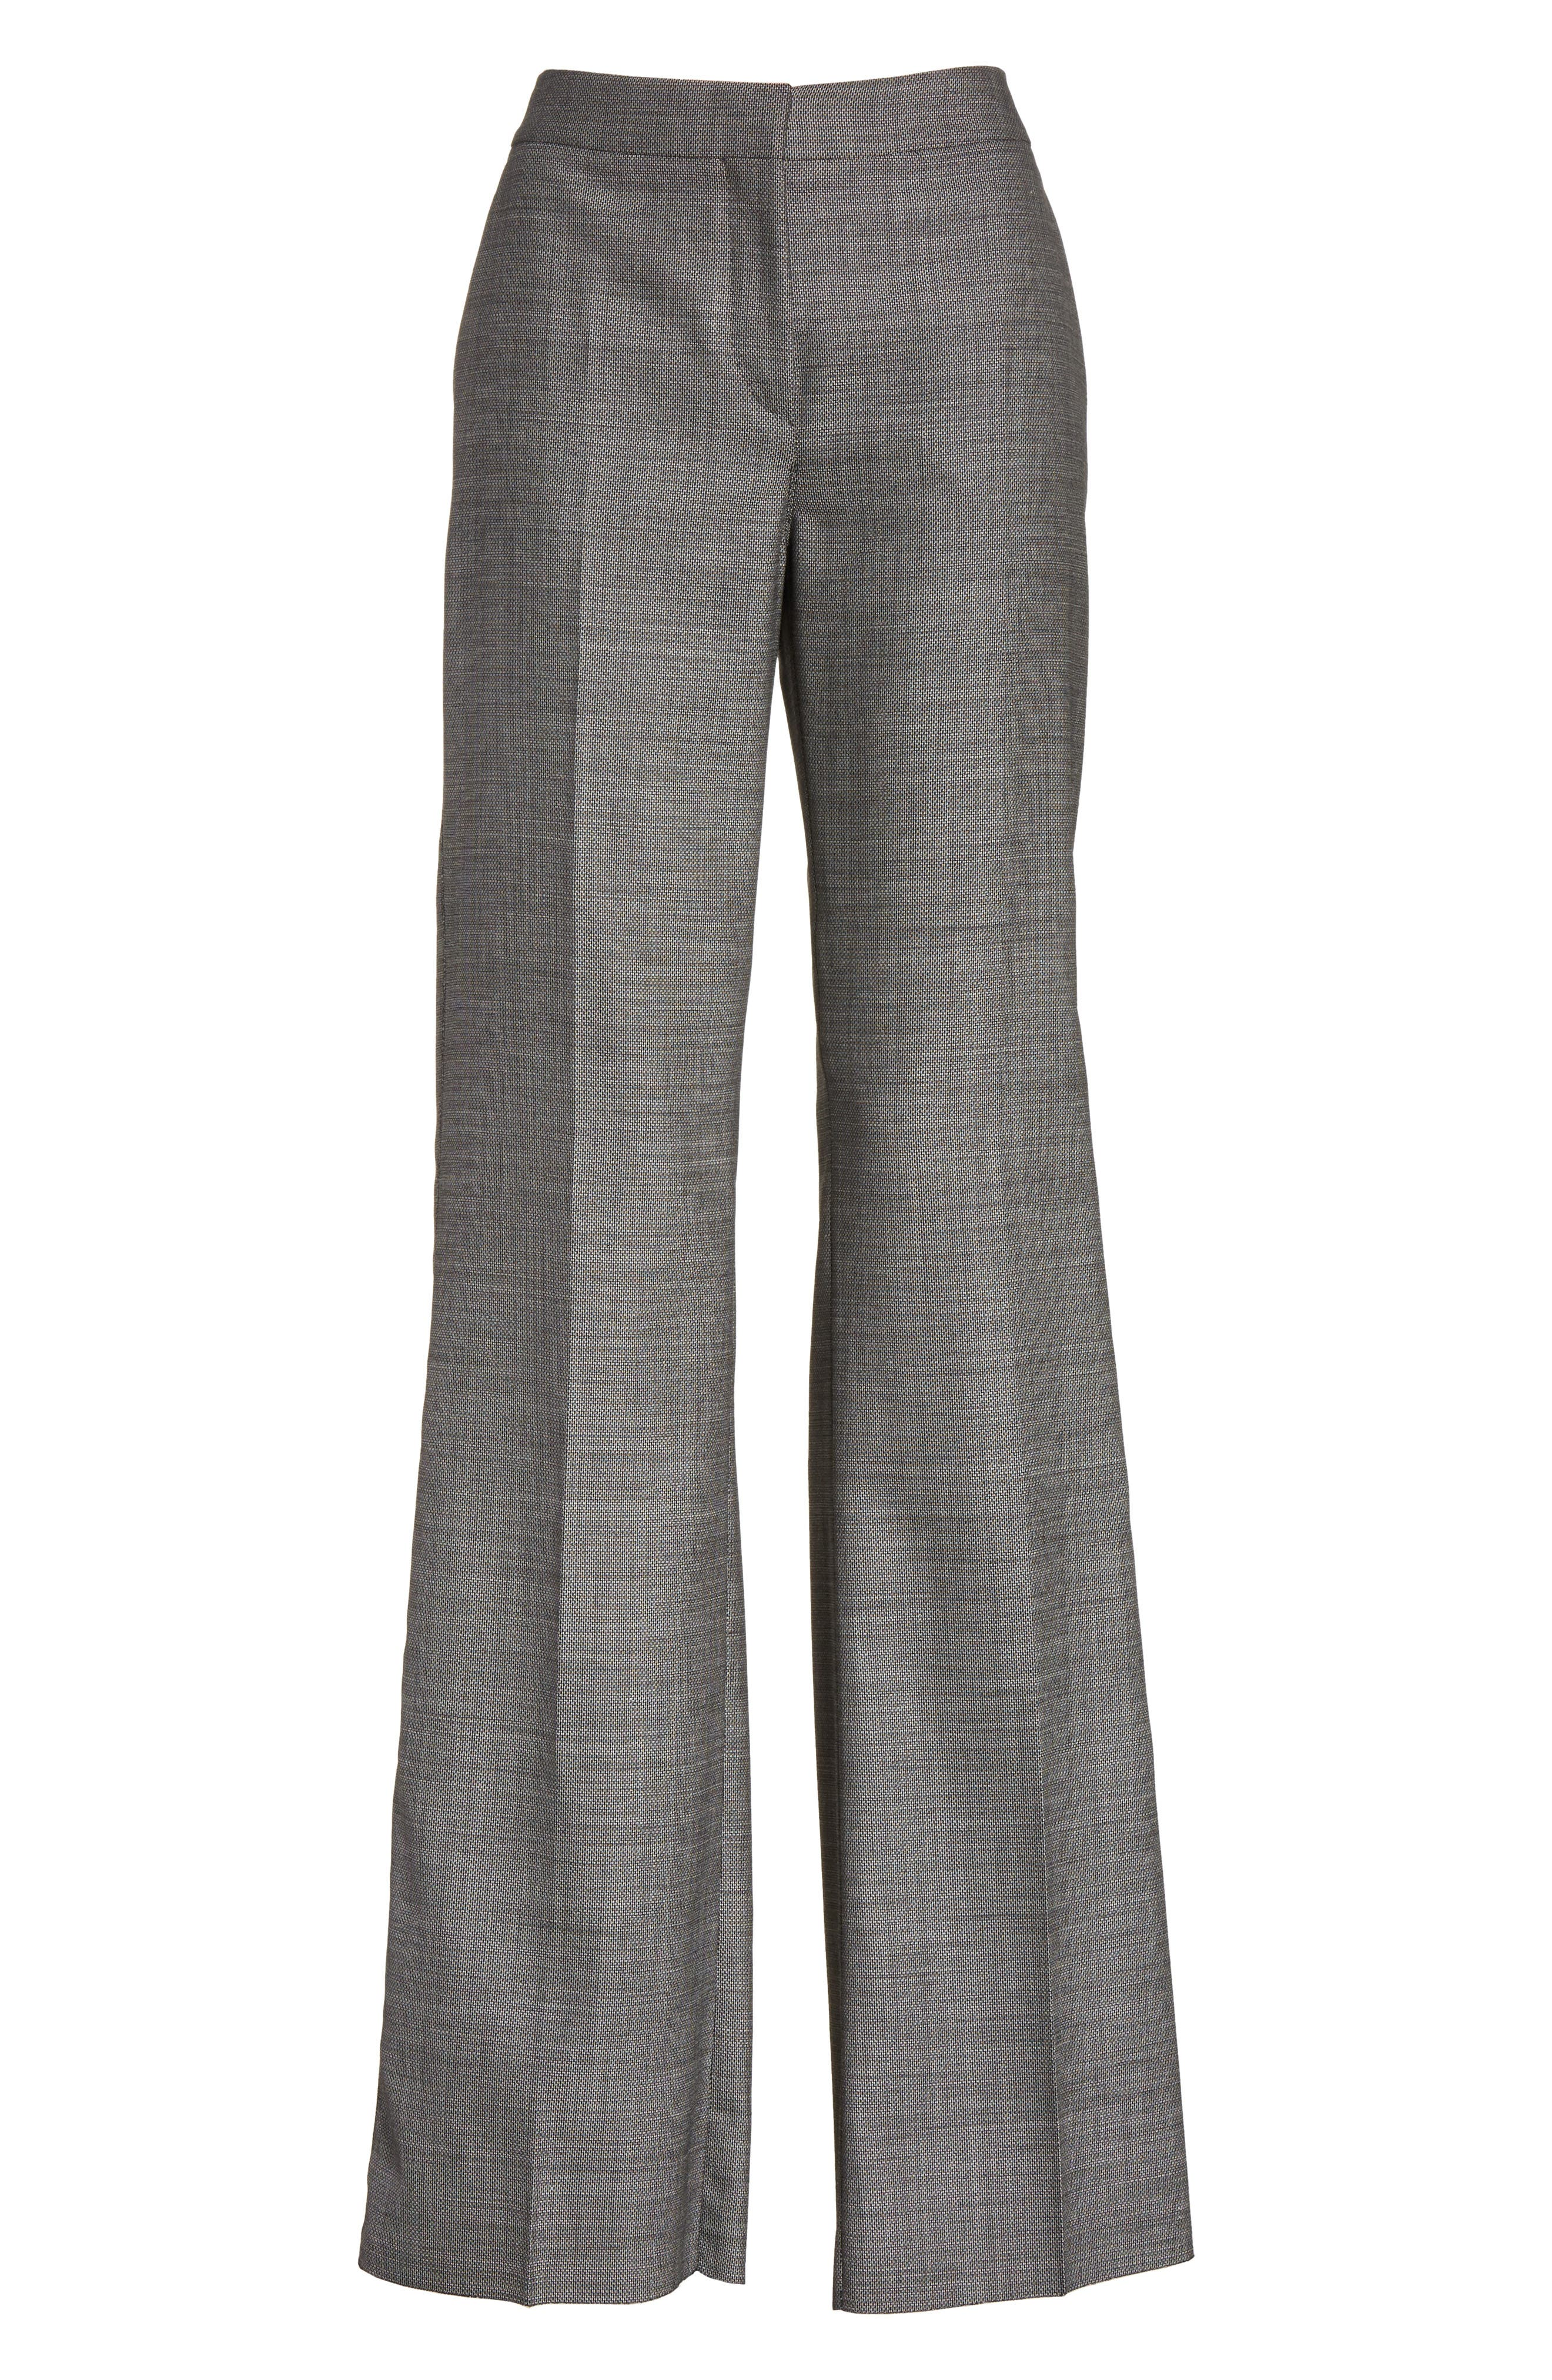 Verbas Stretch Wool Pants,                             Alternate thumbnail 6, color,                             001